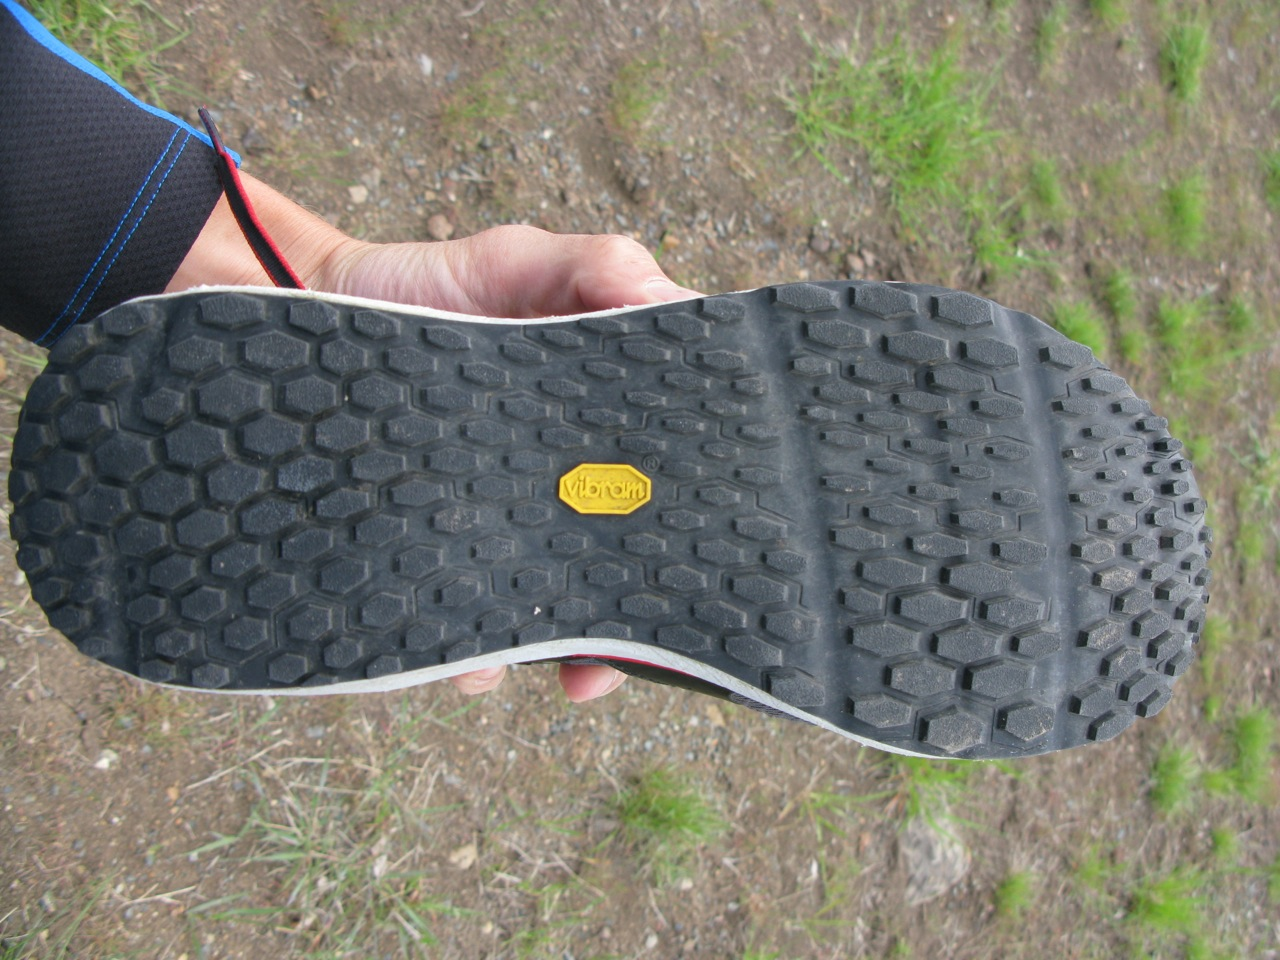 The North Face Ultra Trail Shoe Review